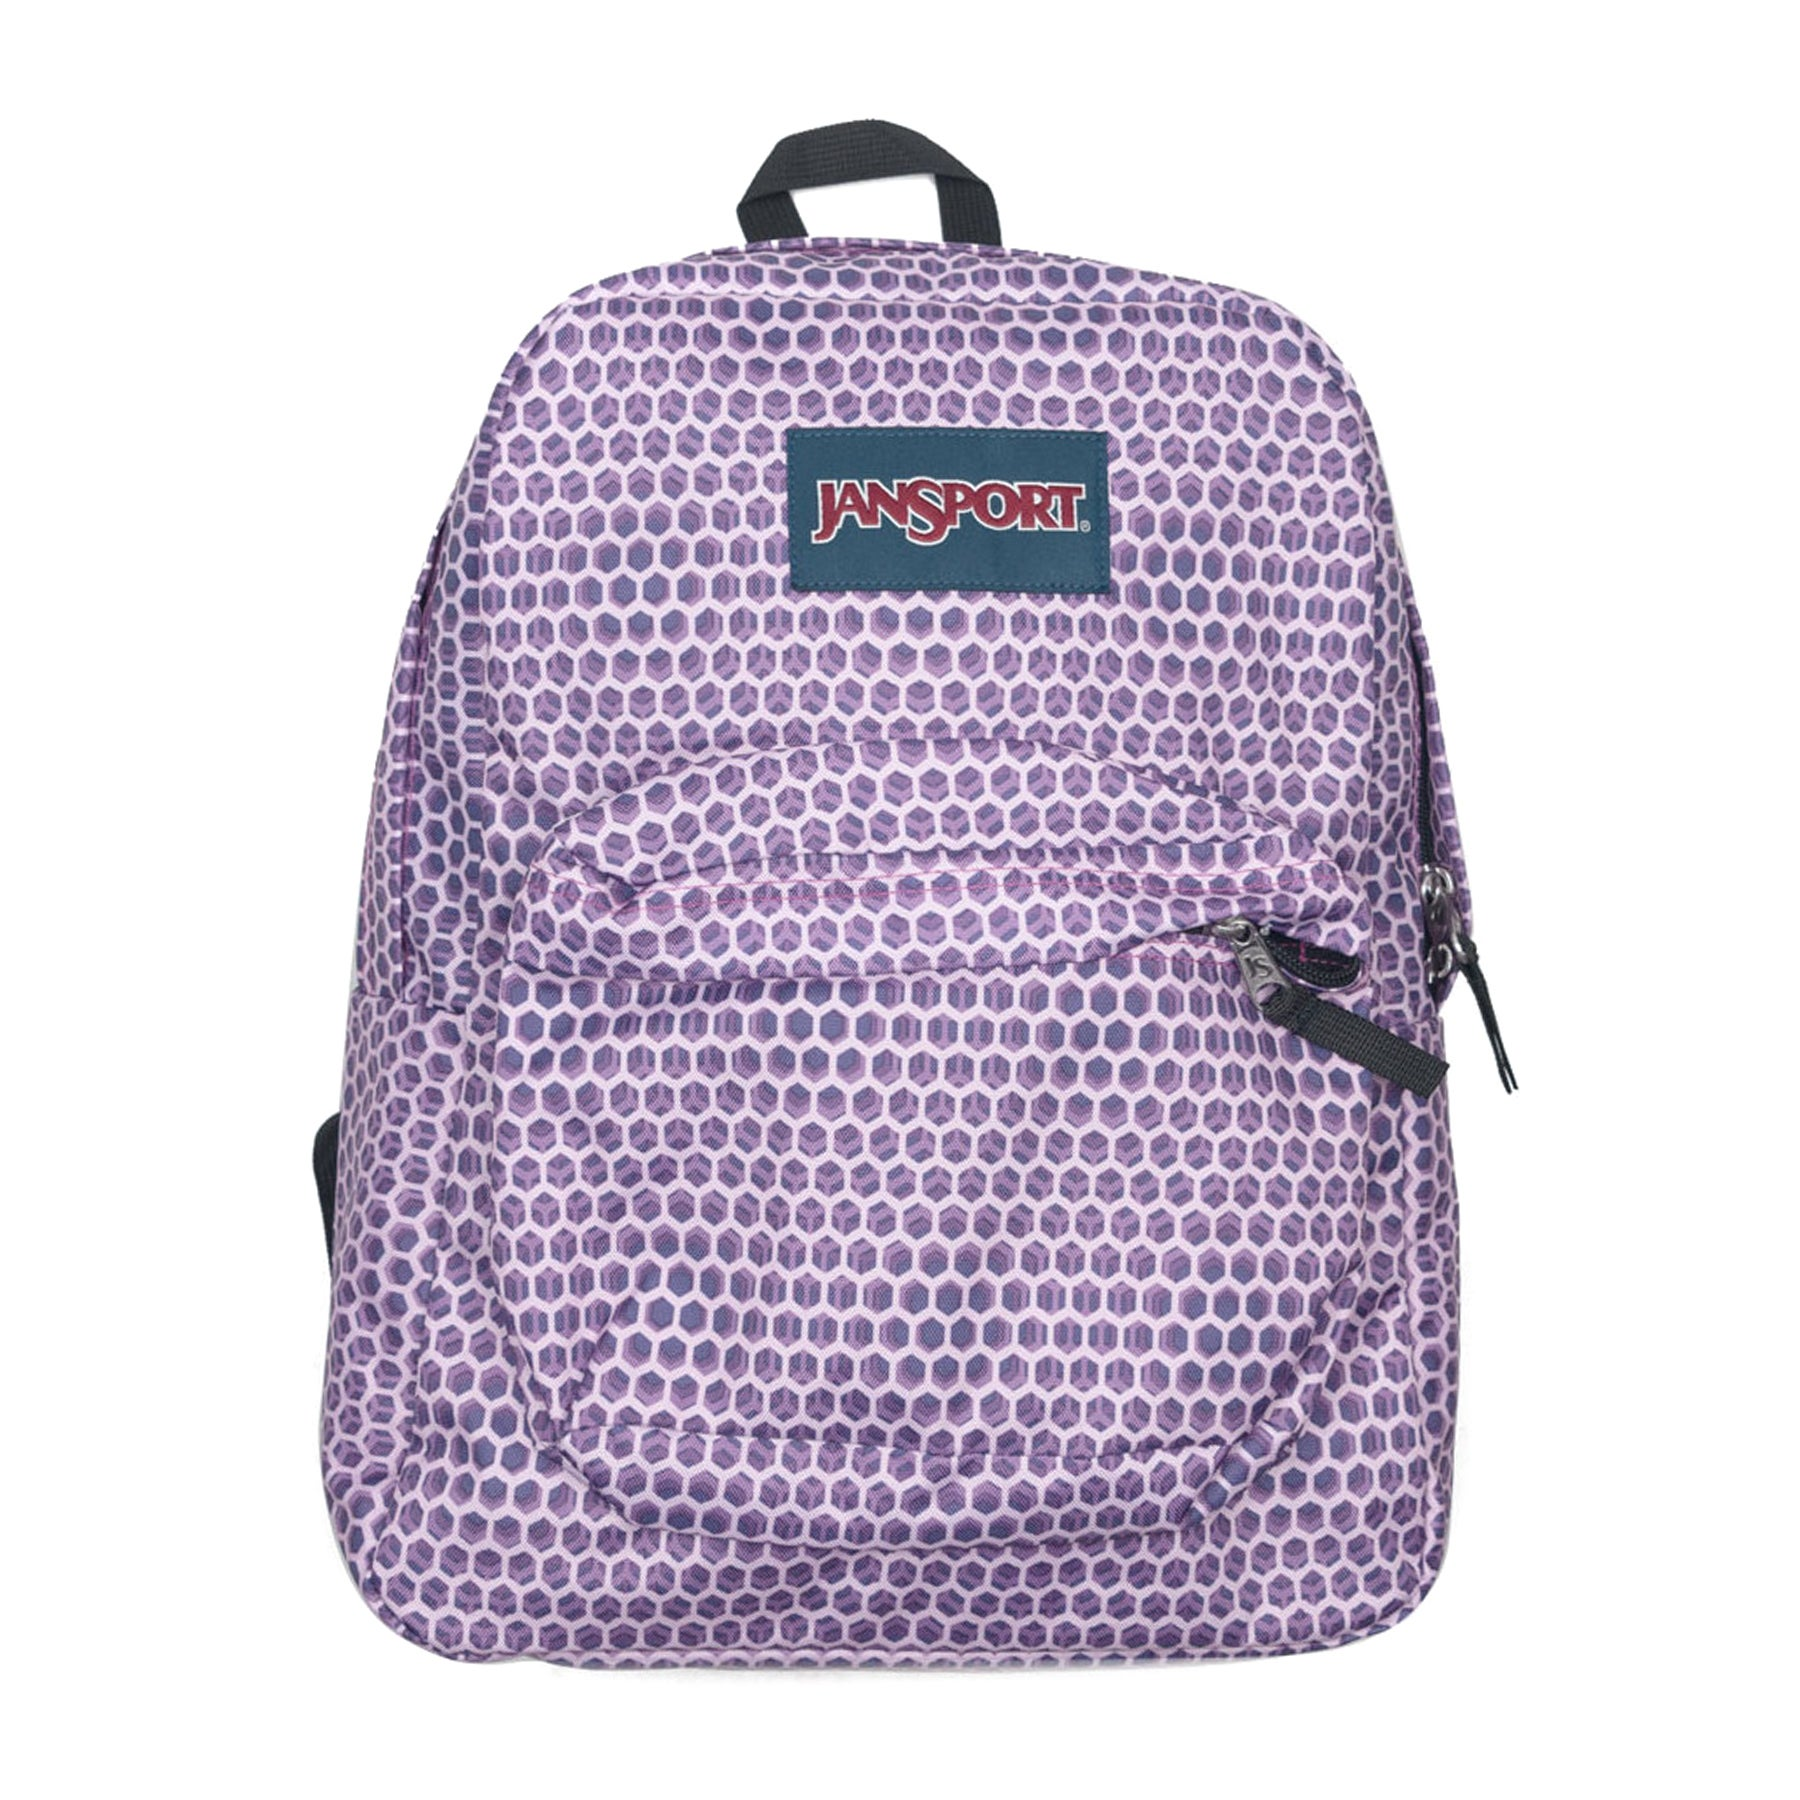 Jansport Superbreak Backpack - Urban Optical Purple